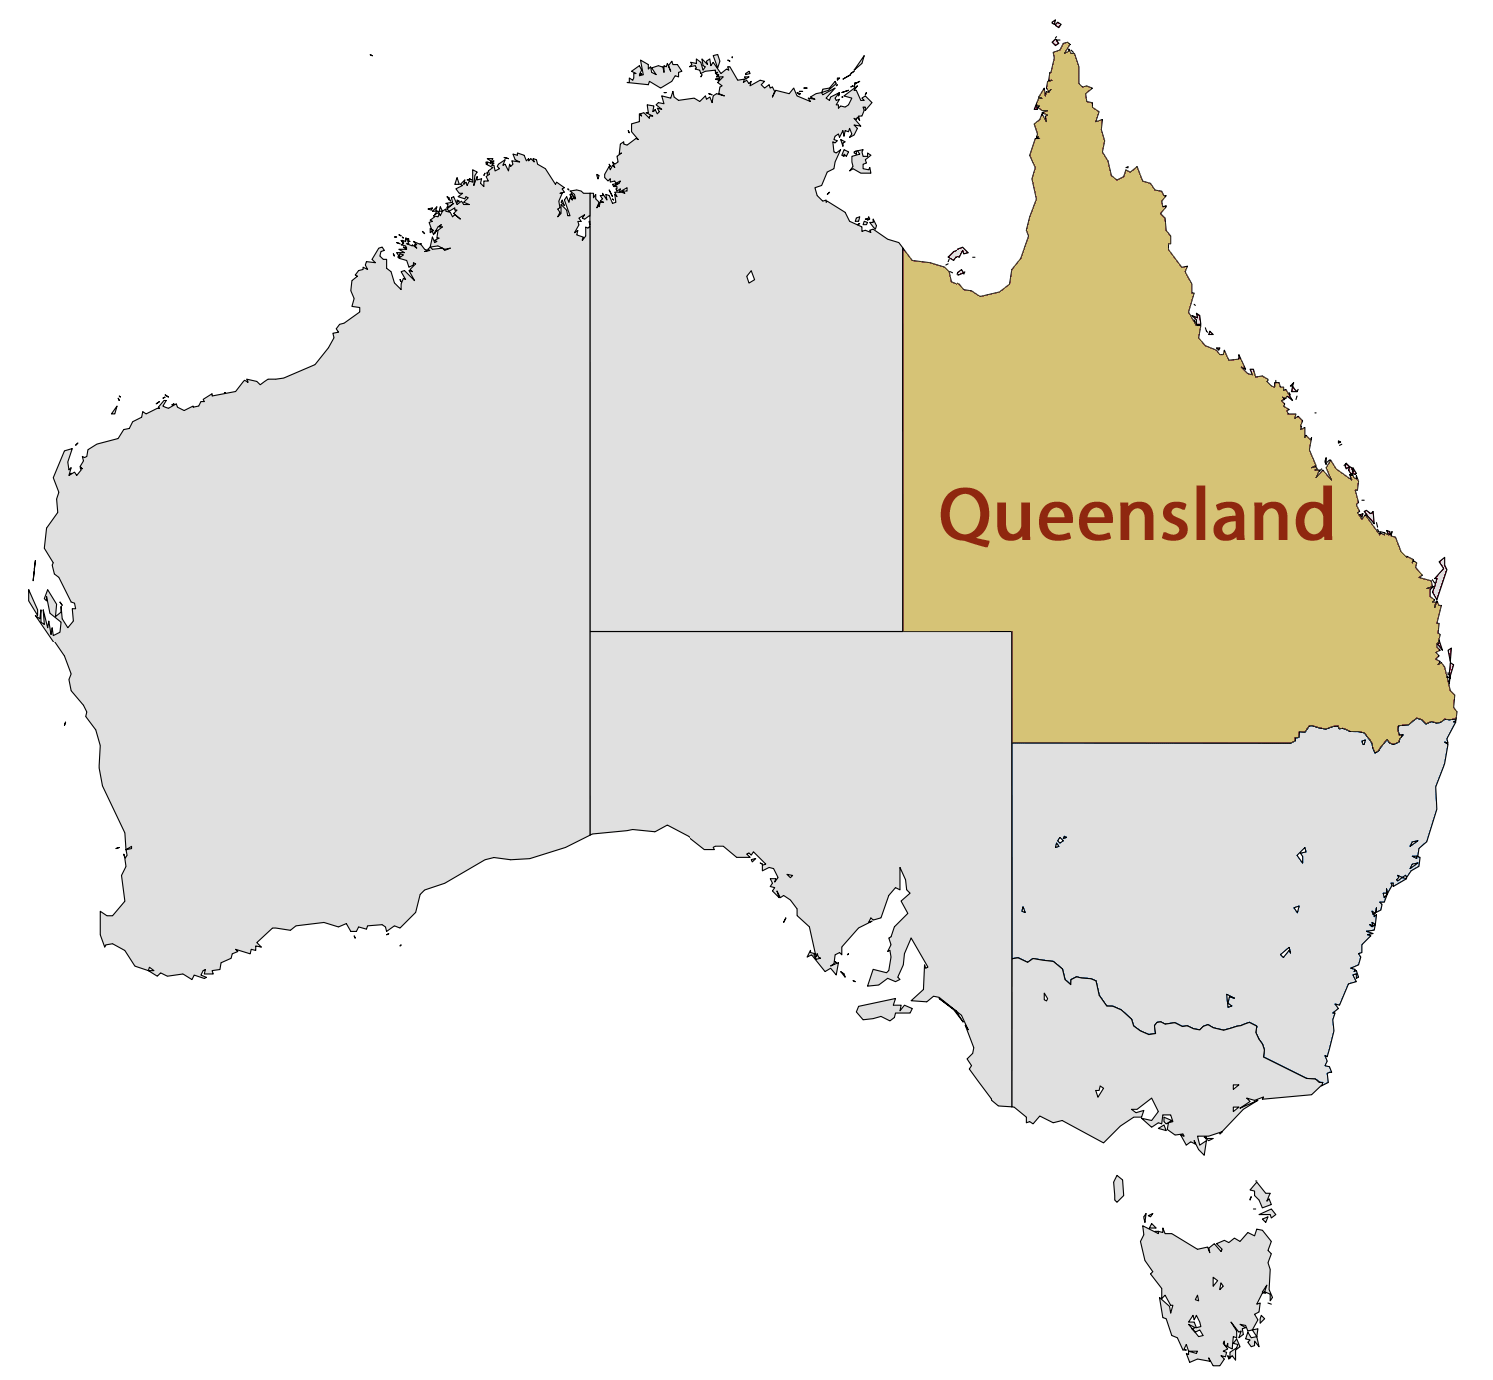 queensland map coloring pages - photo#23